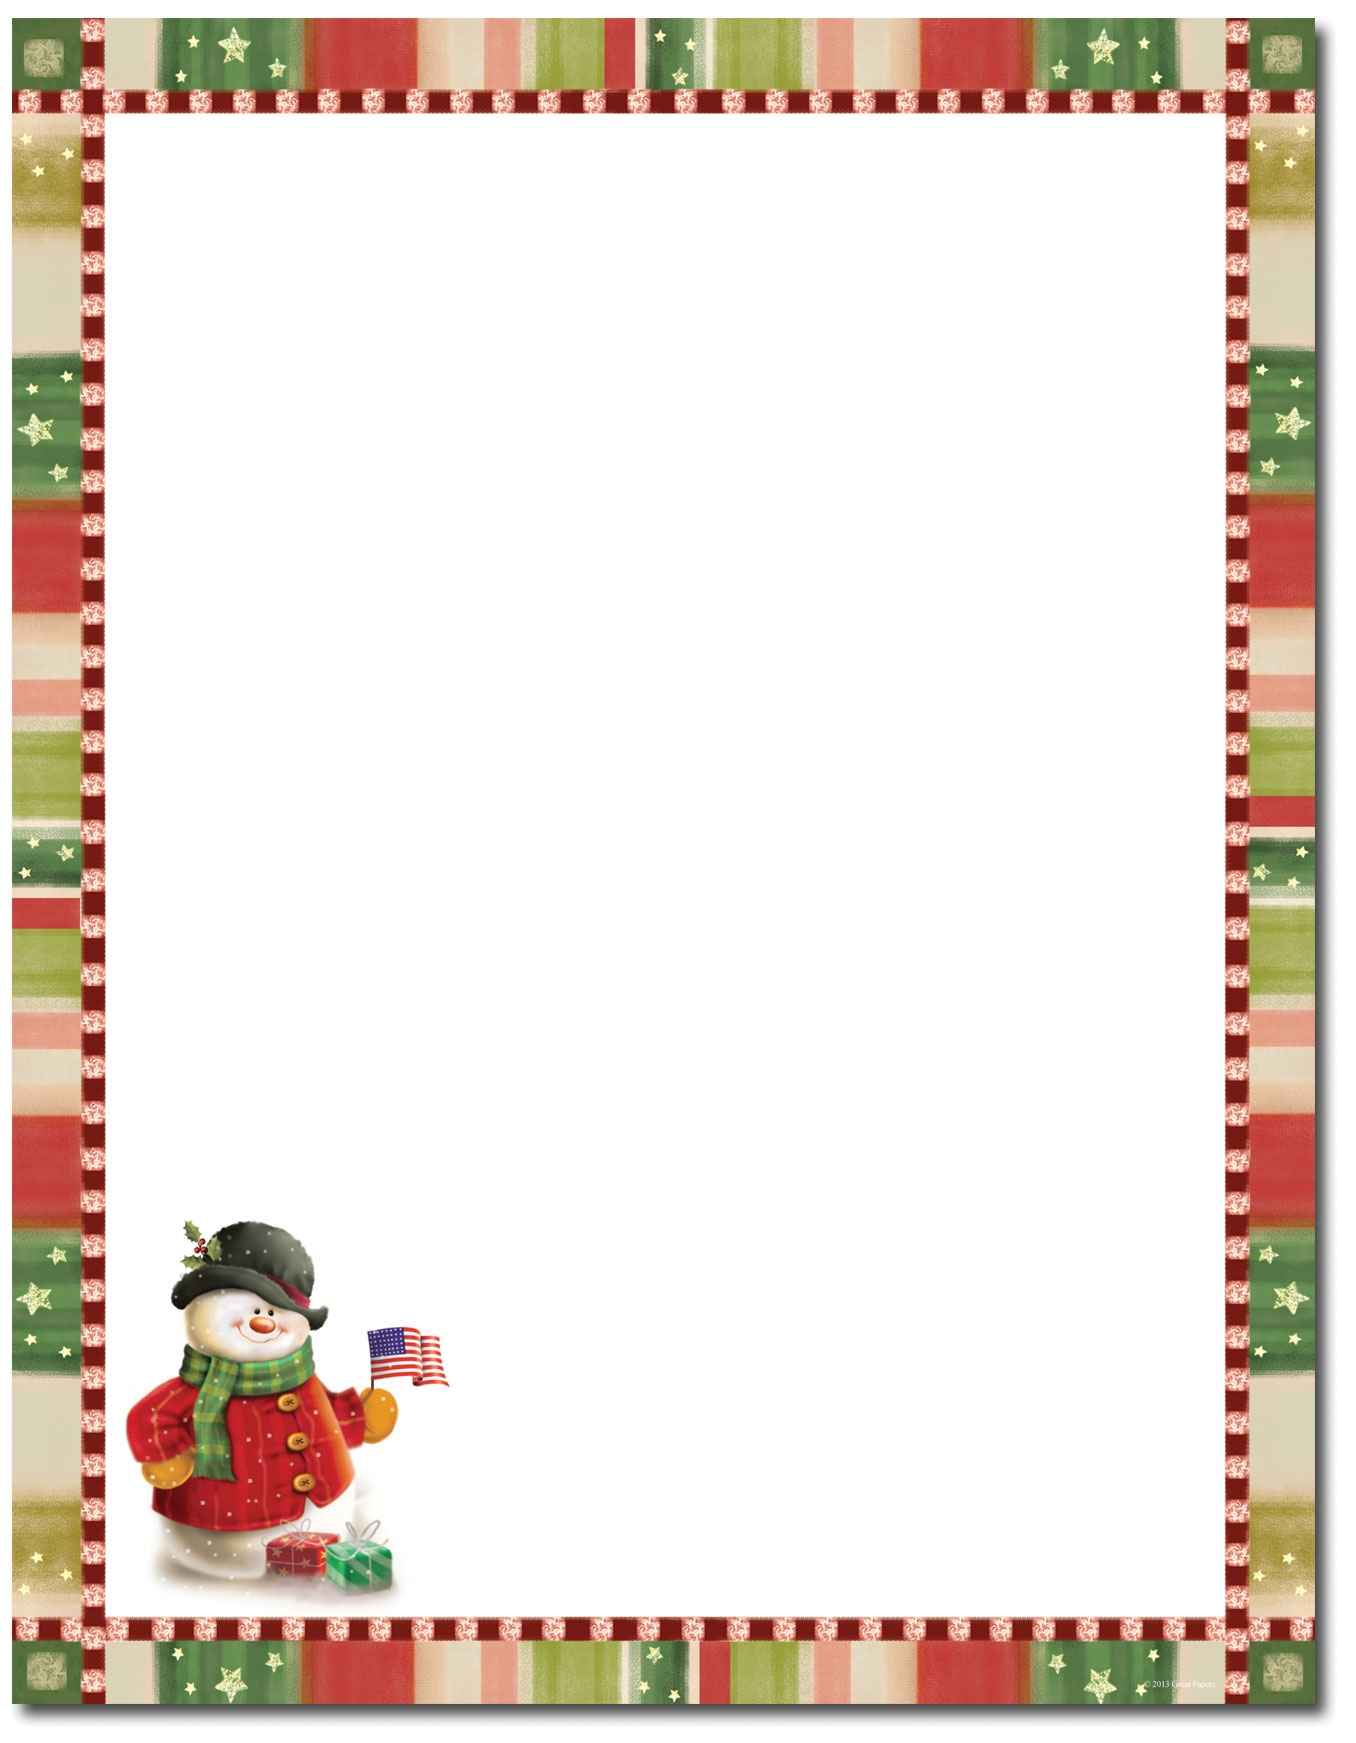 Free Christmas Letterhead Cliparts, Download Free Clip Art, Free - Free Printable Christmas Letterhead